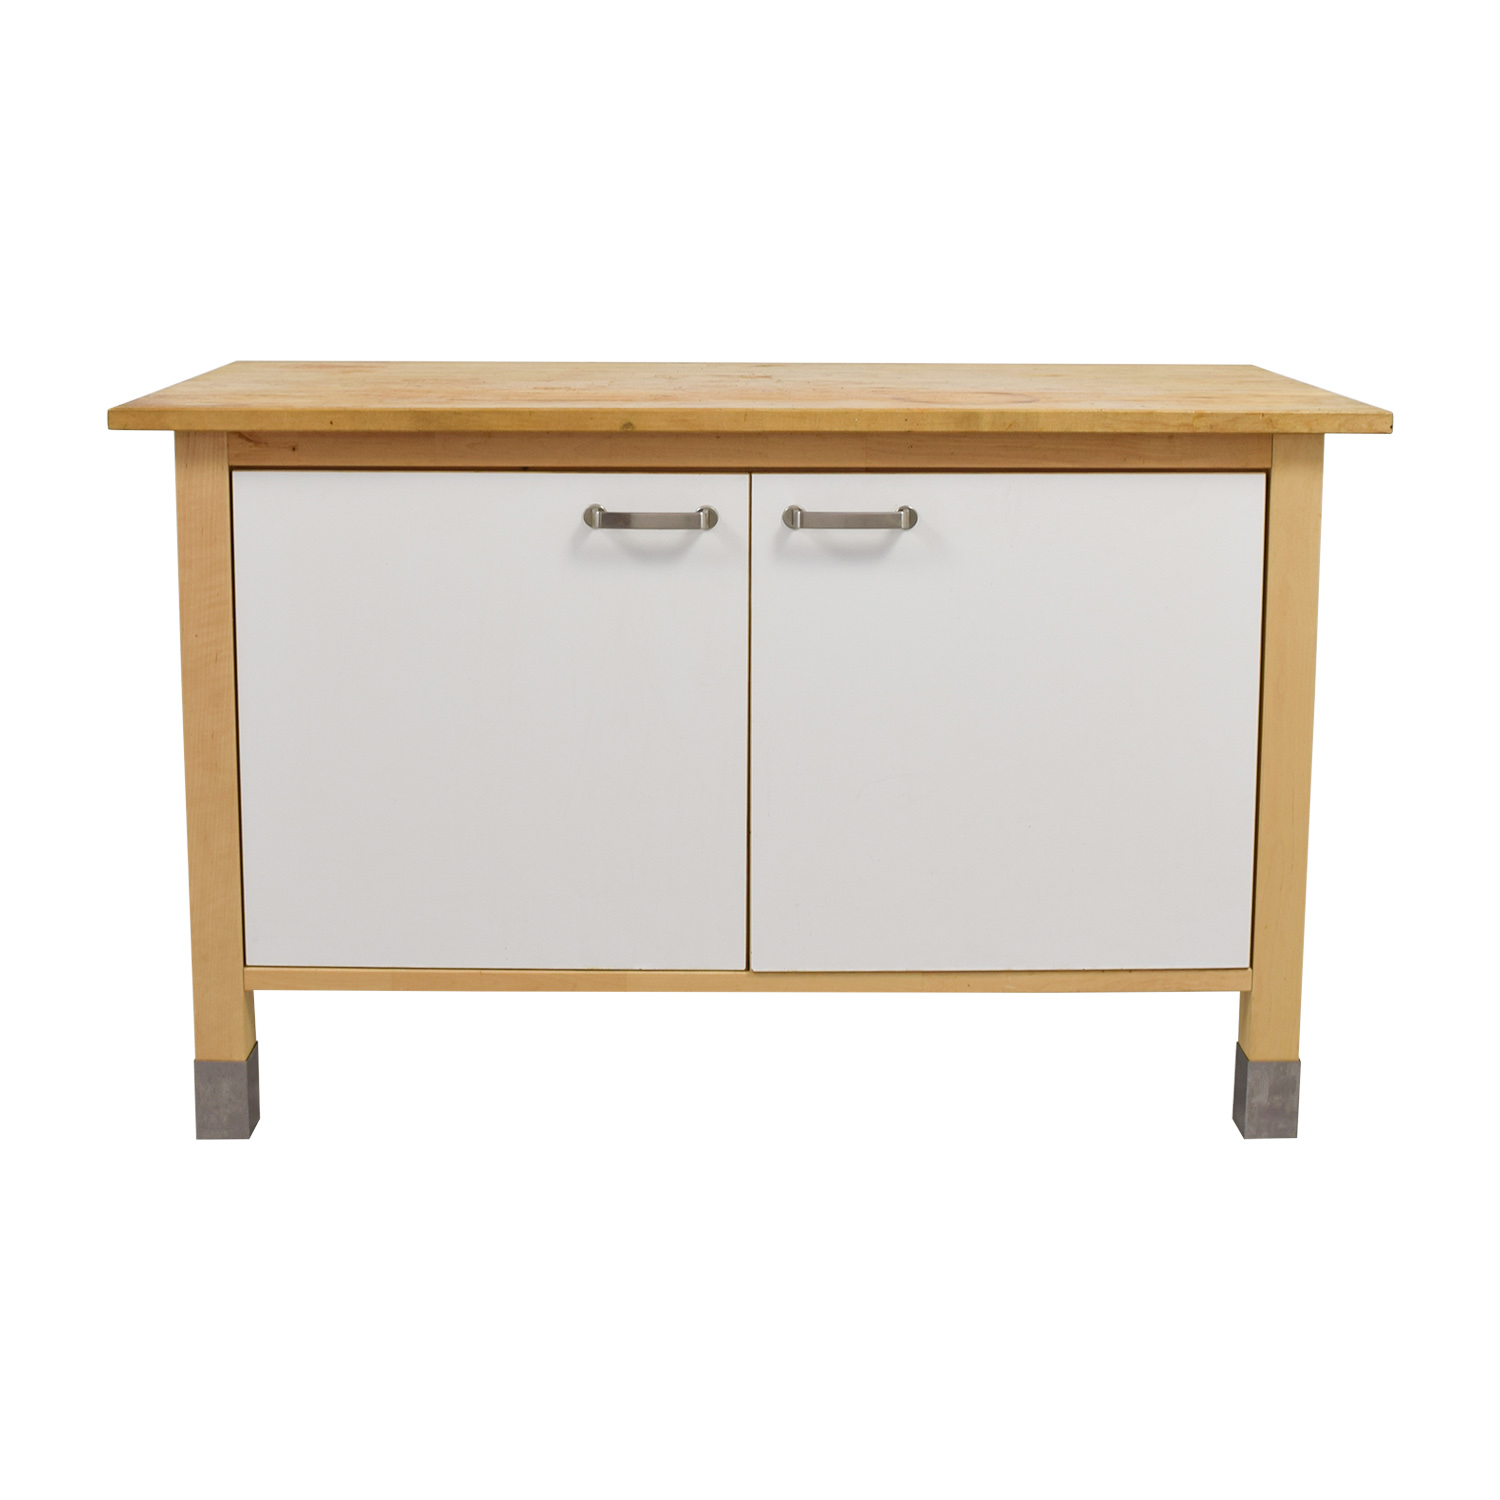 Admirable 90 Off Ikea Ikea Kitchen Butcher Block And White Cabinet Tables Download Free Architecture Designs Scobabritishbridgeorg